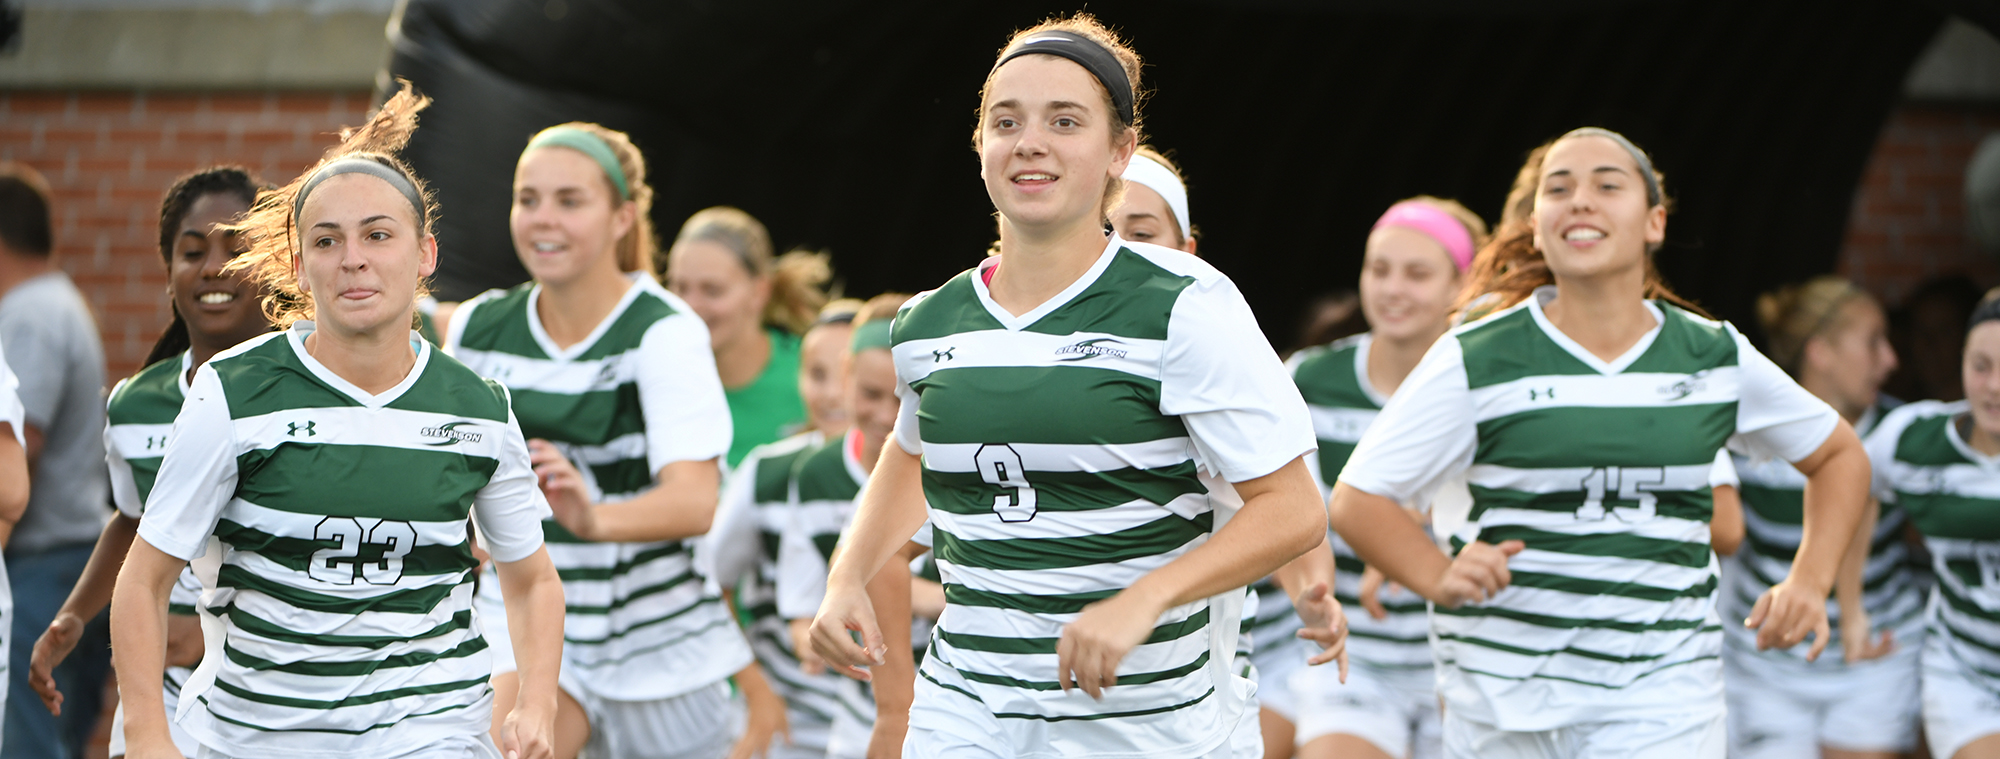 Women's Soccer Begins 2018 Slate August 31